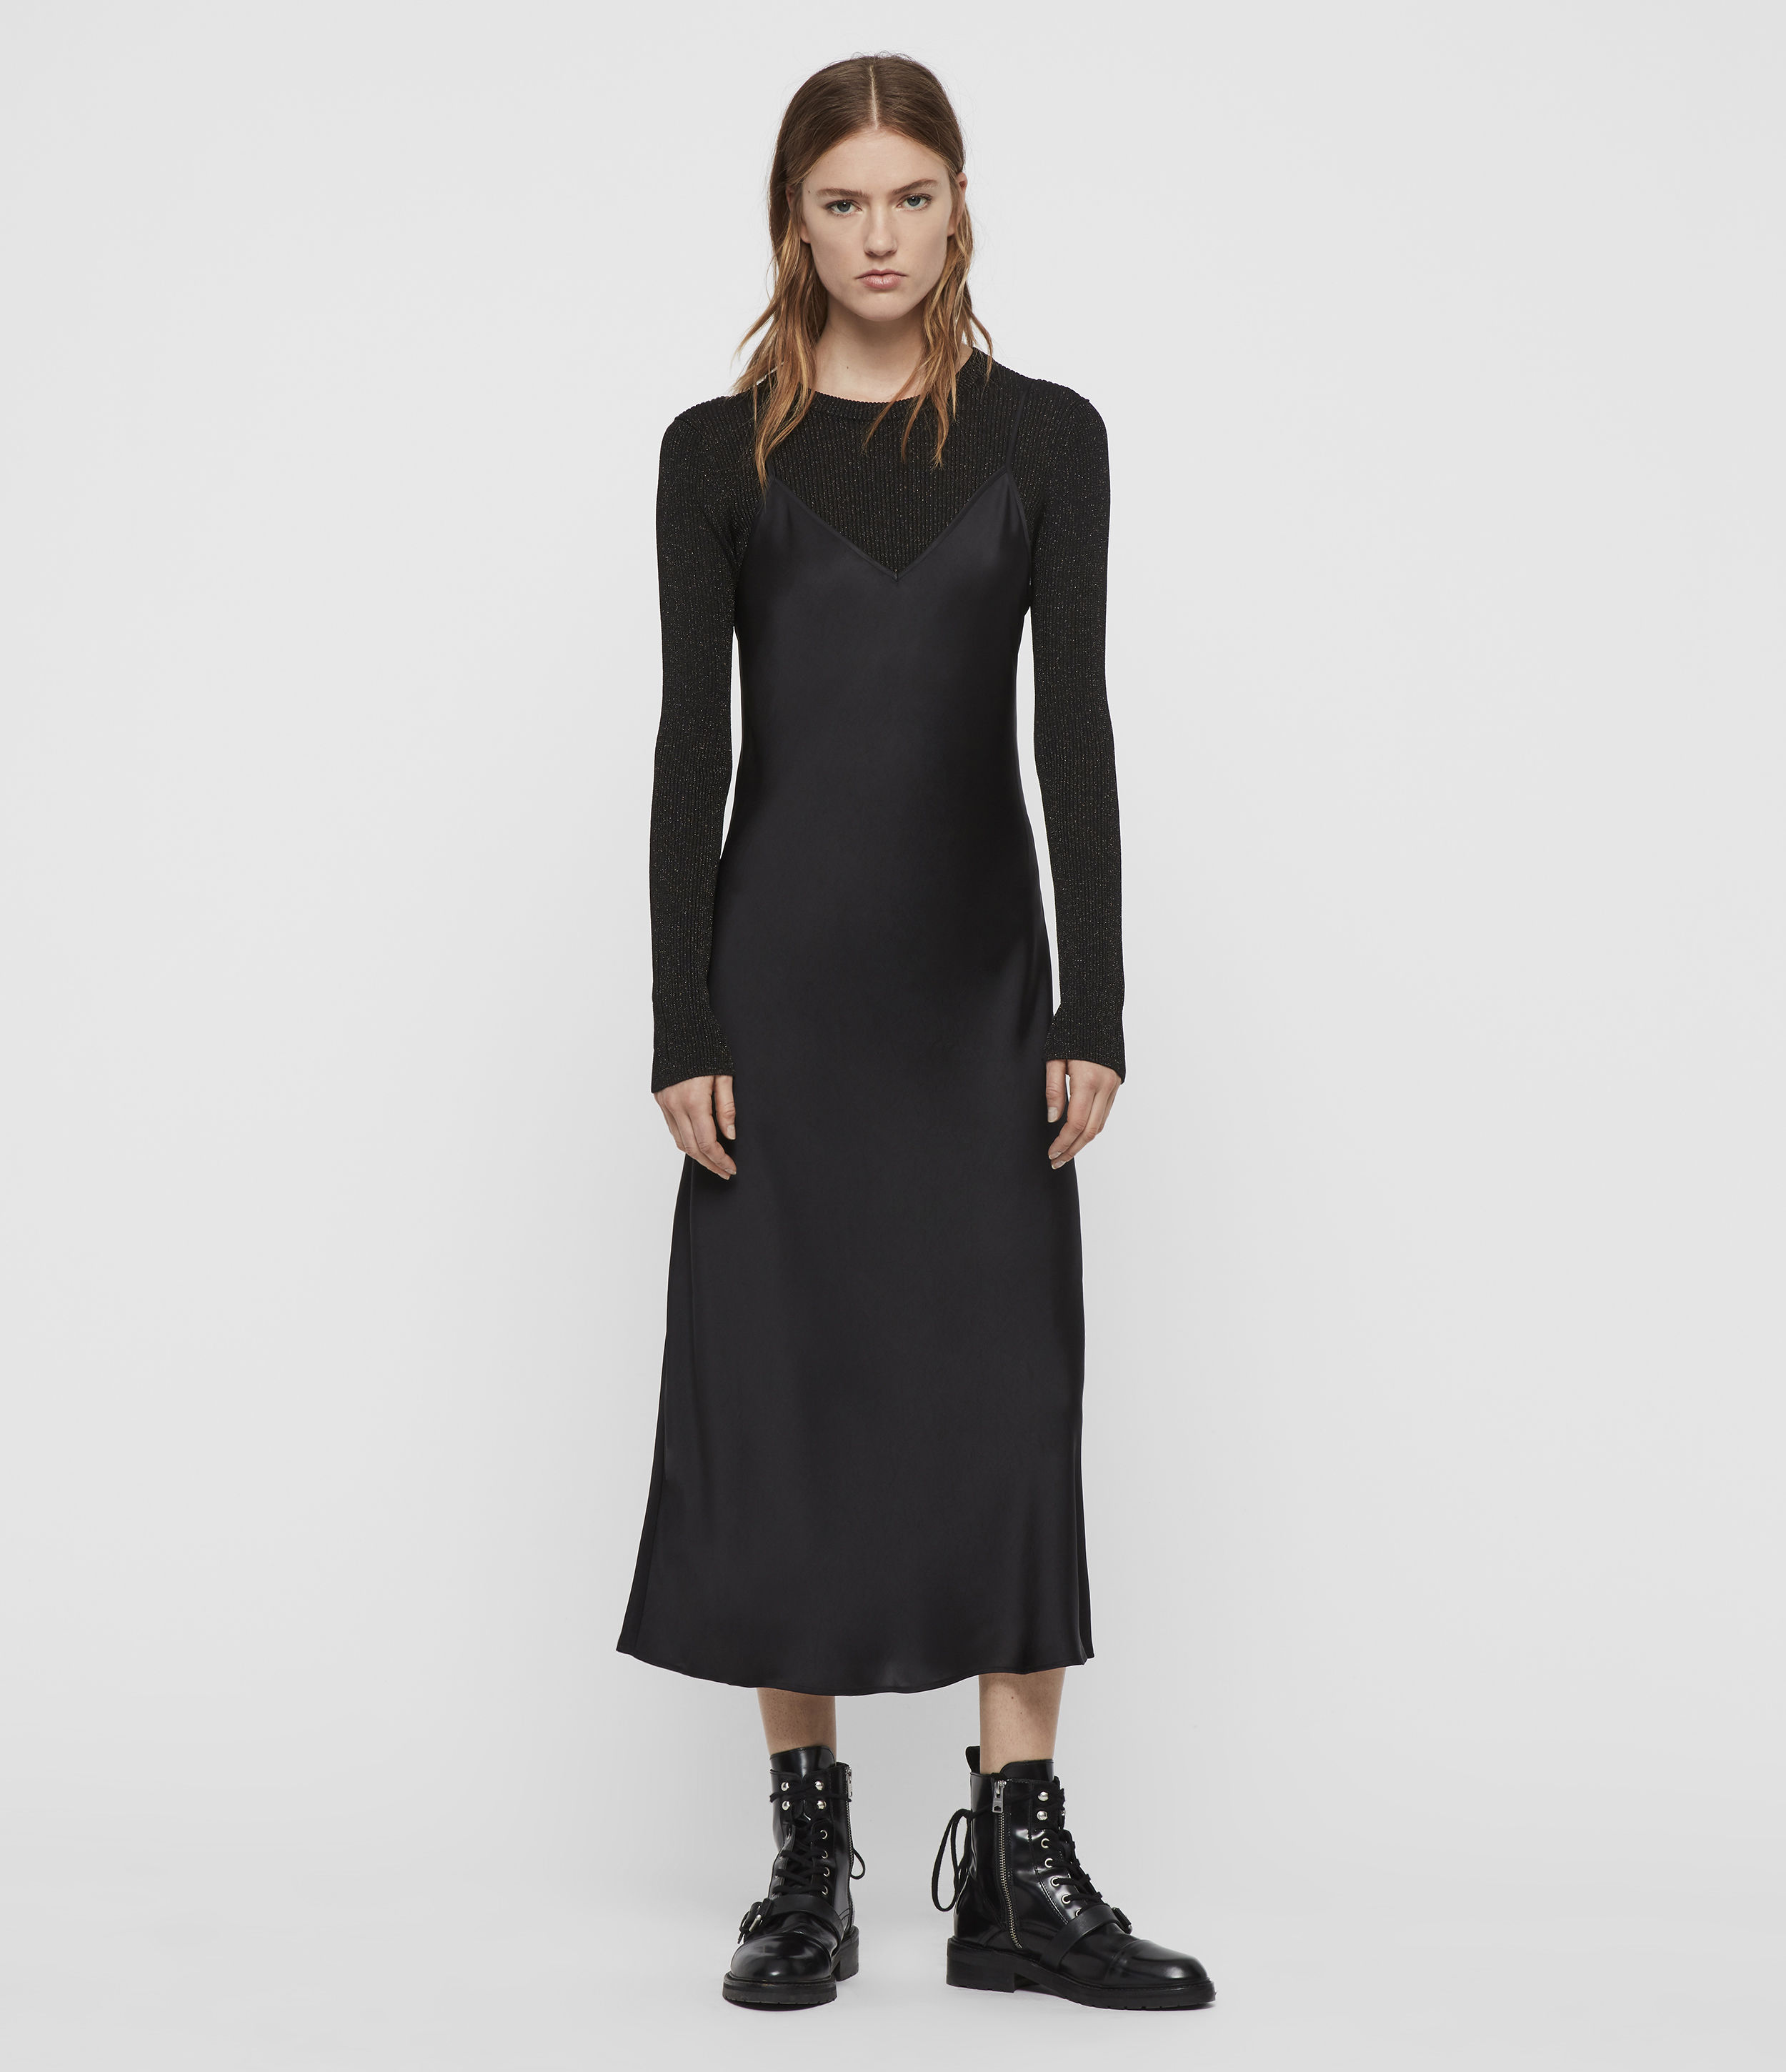 AllSaints Kowlo Shine 2-in-1 Dress